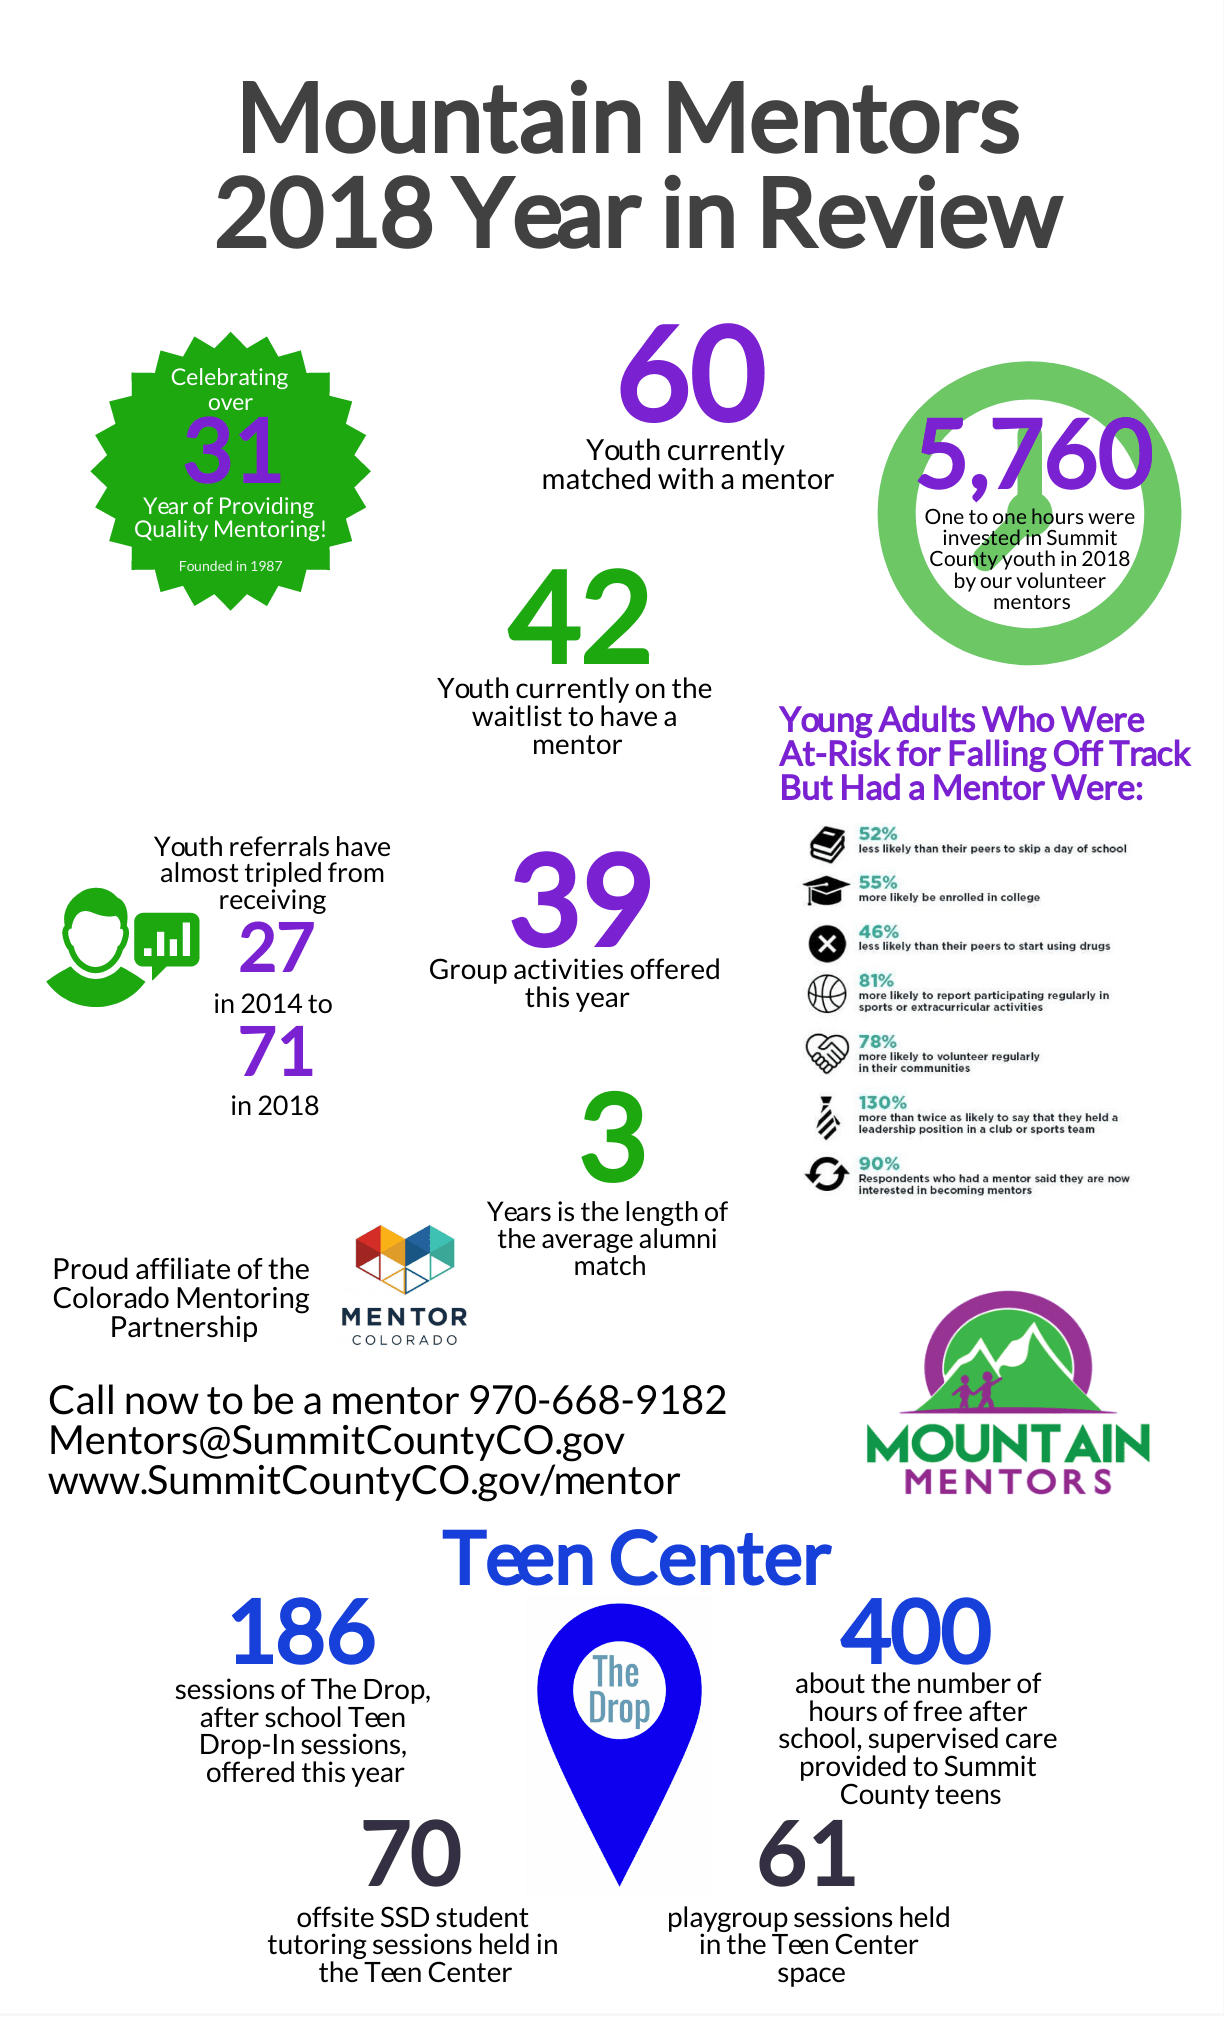 MountainMentorsYearinReview2018withTeenCenter